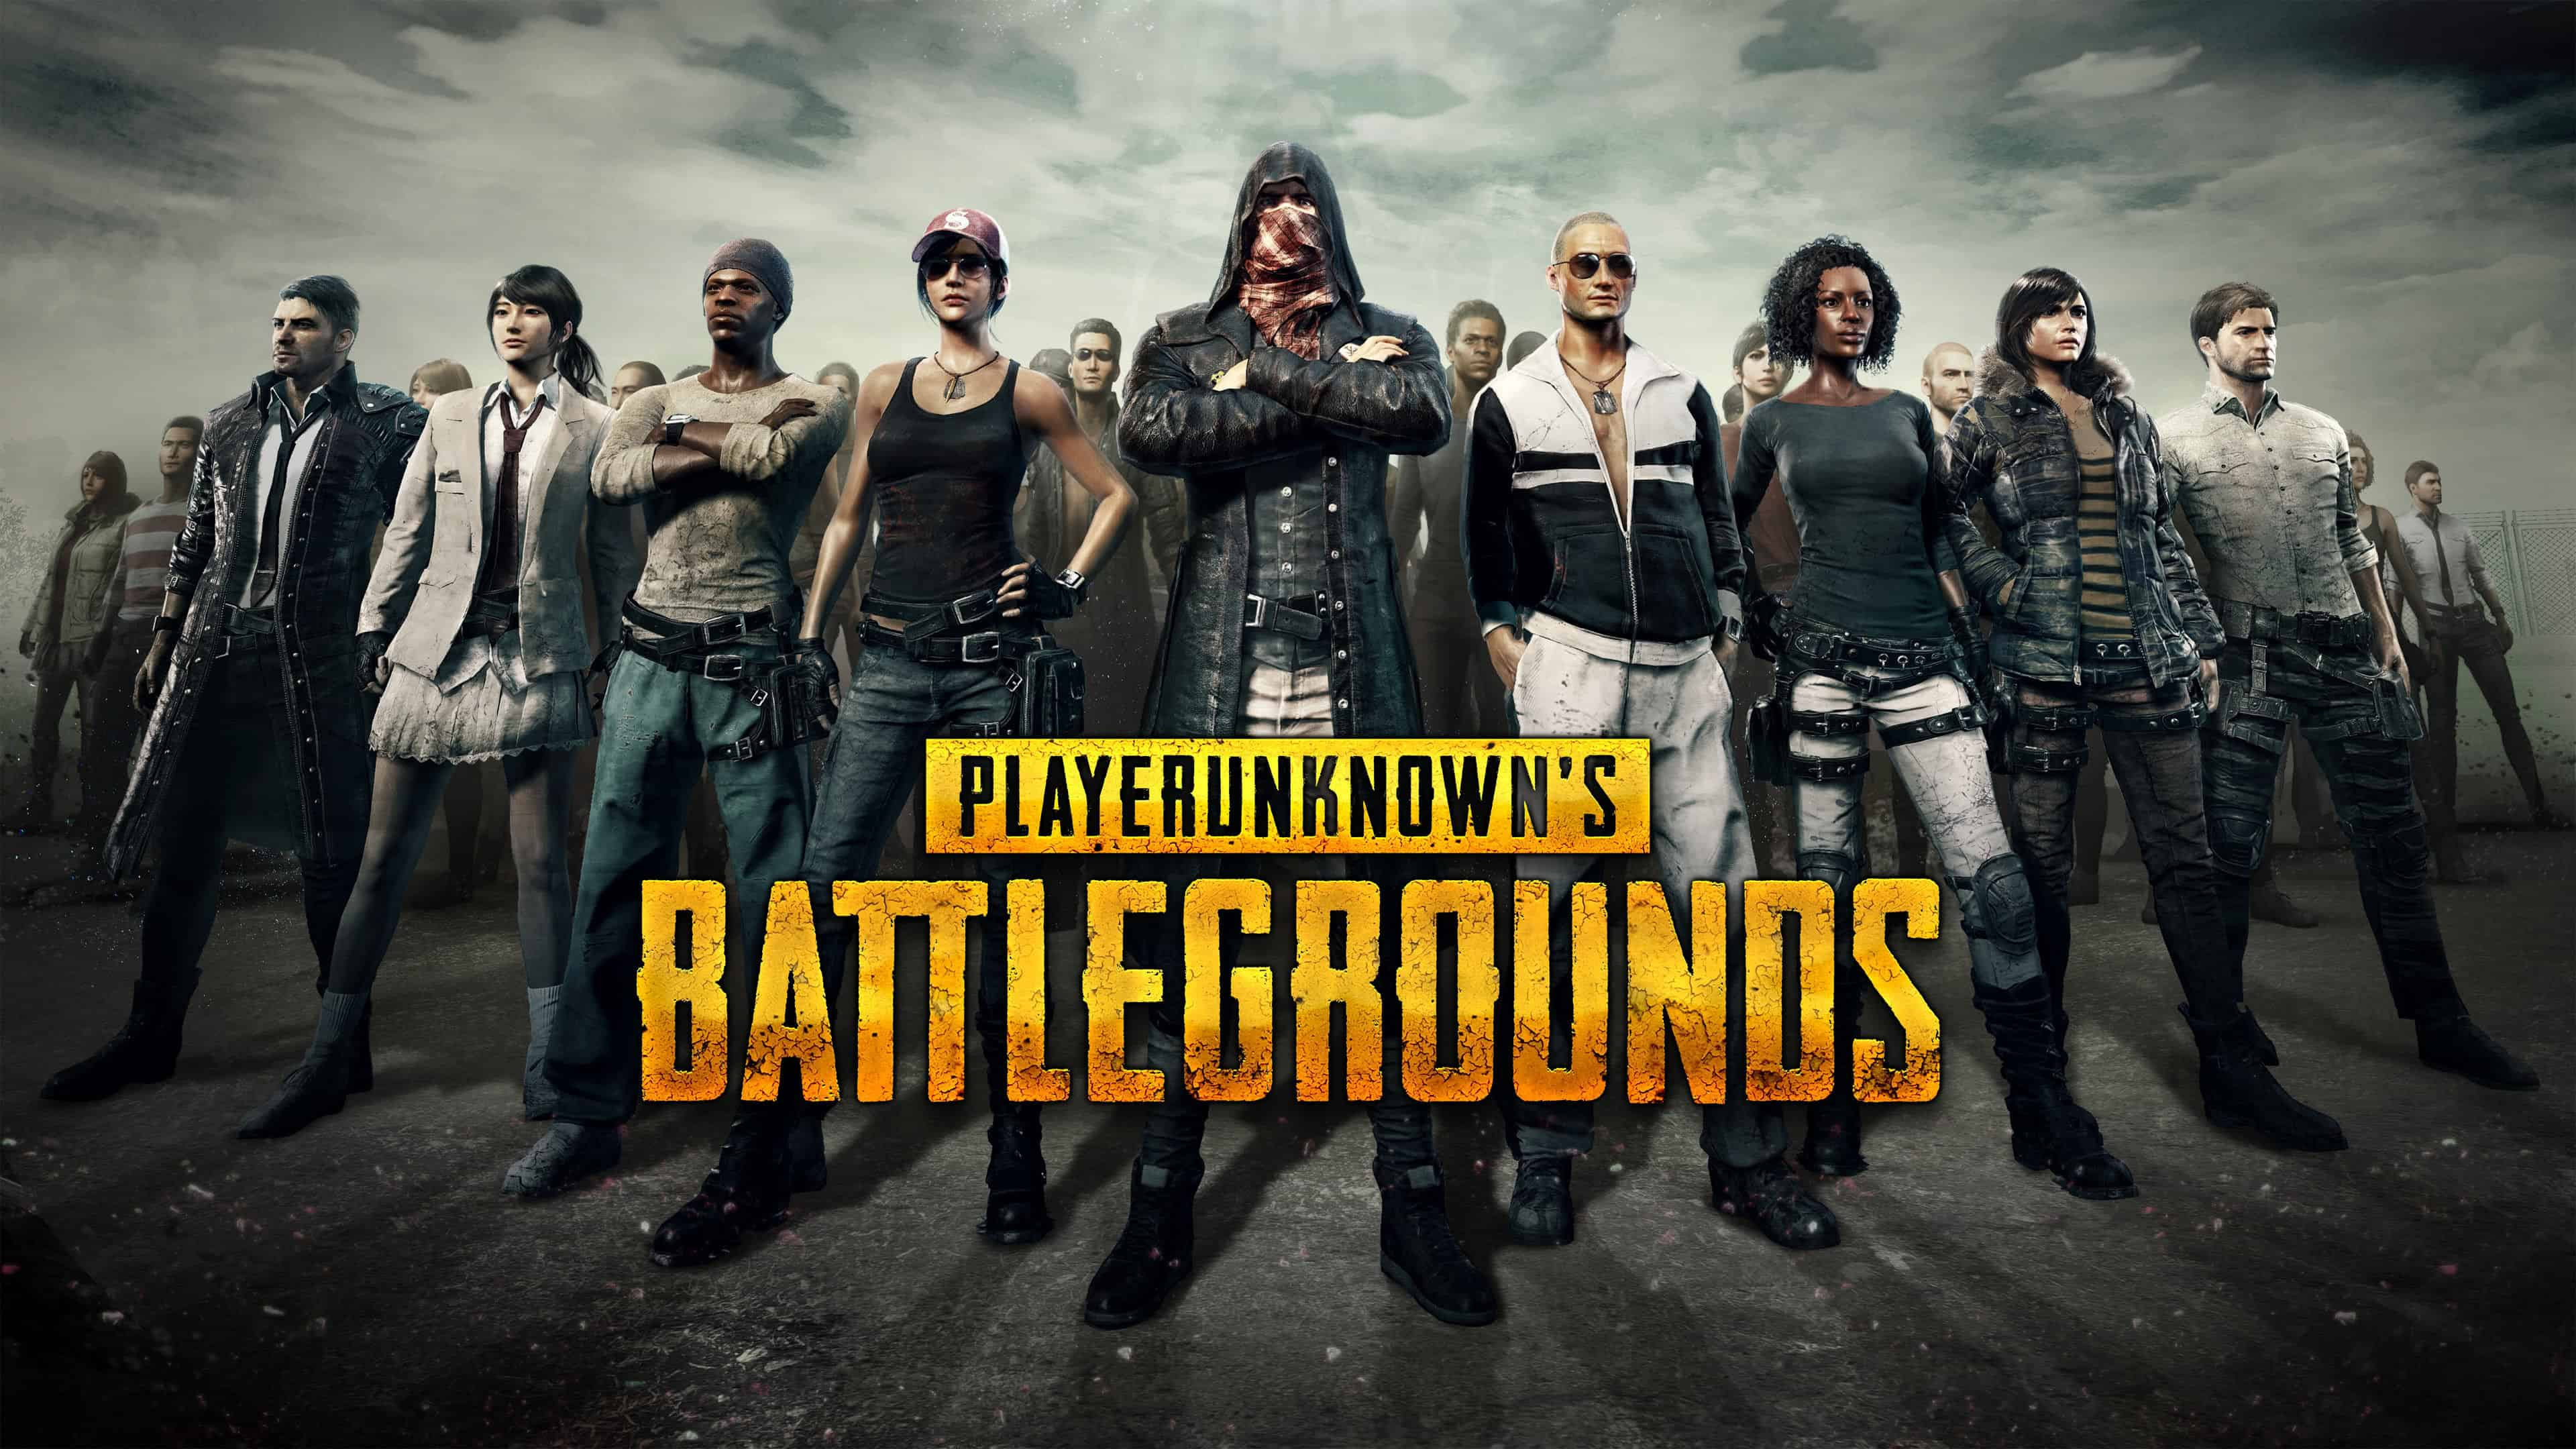 PUBG Player Unknown Battlegrounds Characters UHD 4K Wallpaper Pixelz